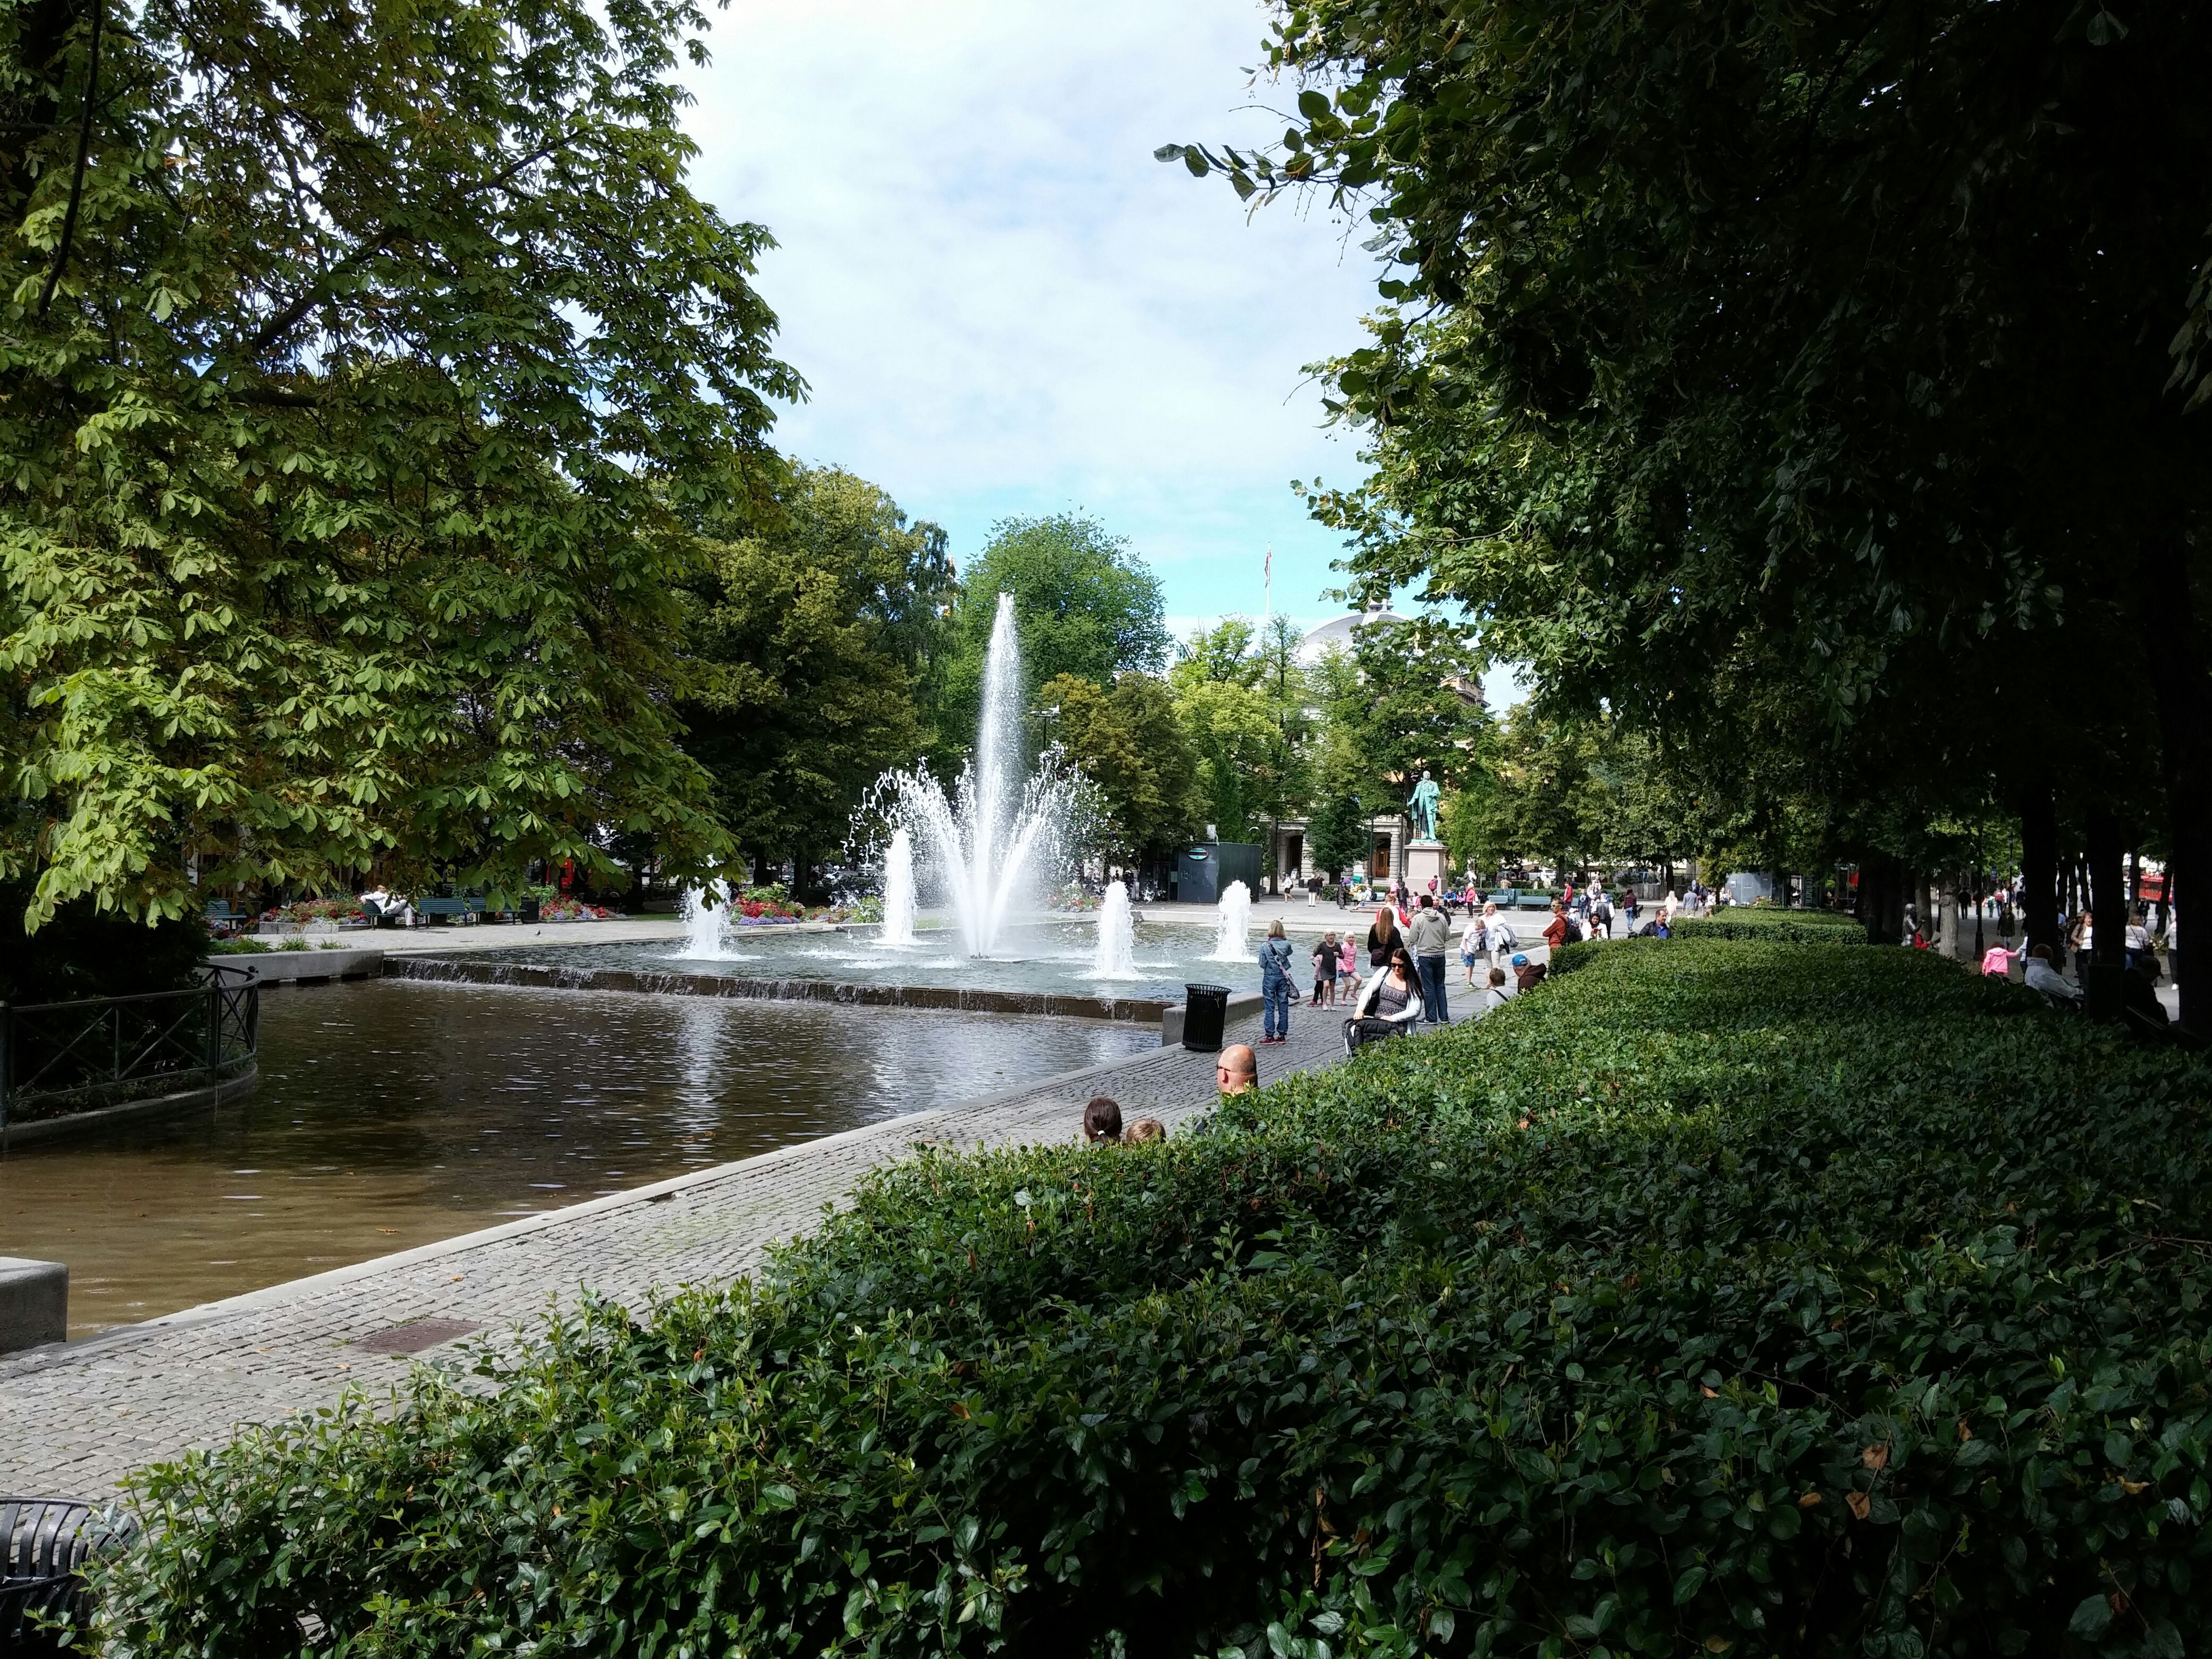 water, tree, fountain, motion, park - man made space, splashing, spraying, waterfall, green color, growth, flowing water, large group of people, long exposure, nature, incidental people, beauty in nature, sky, plant, travel destinations